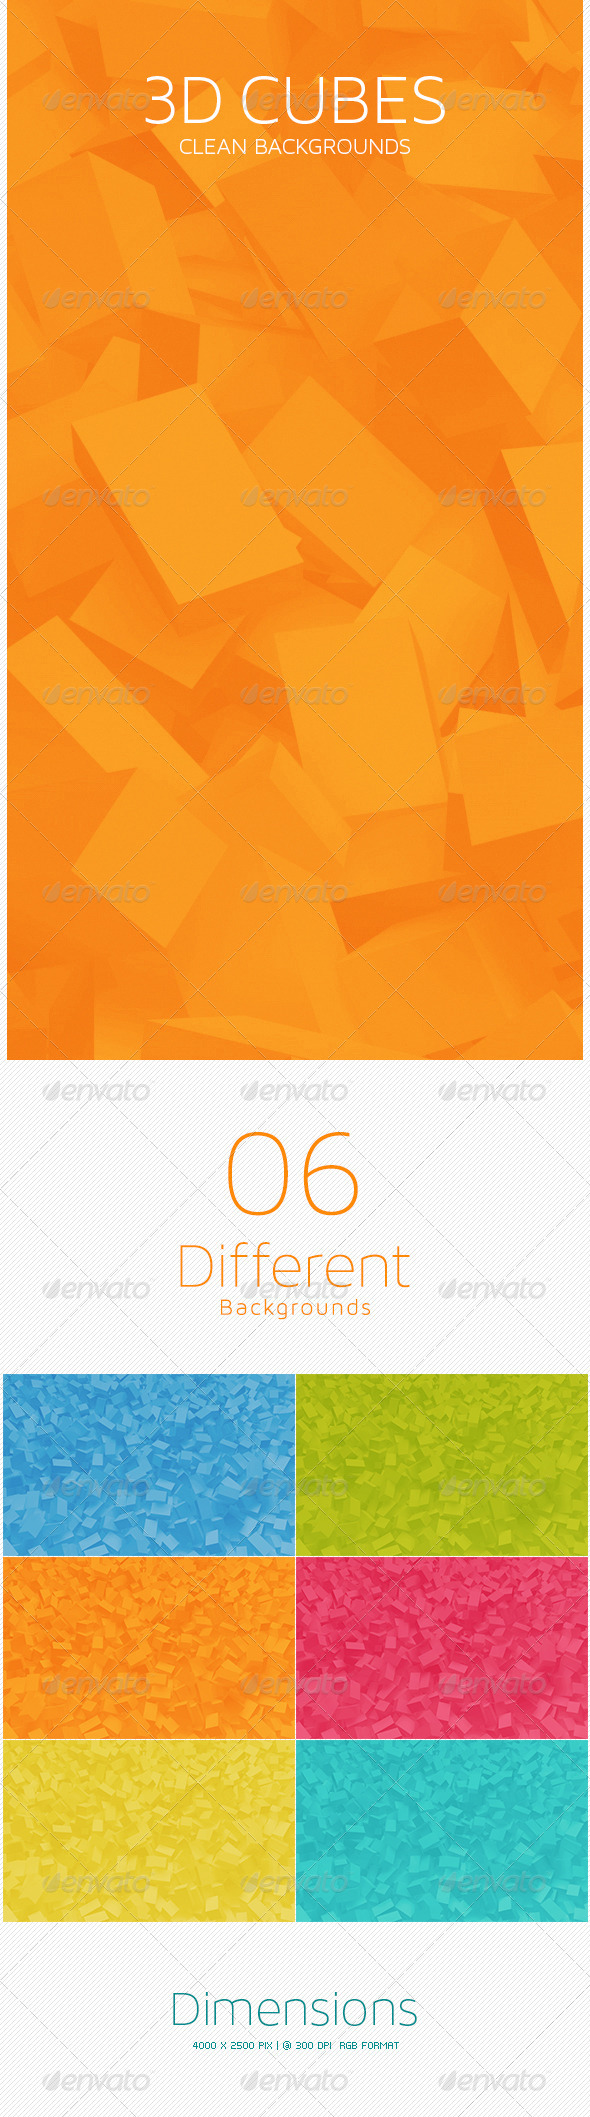 GraphicRiver 3D Cubes Clean Backgrounds 5595991